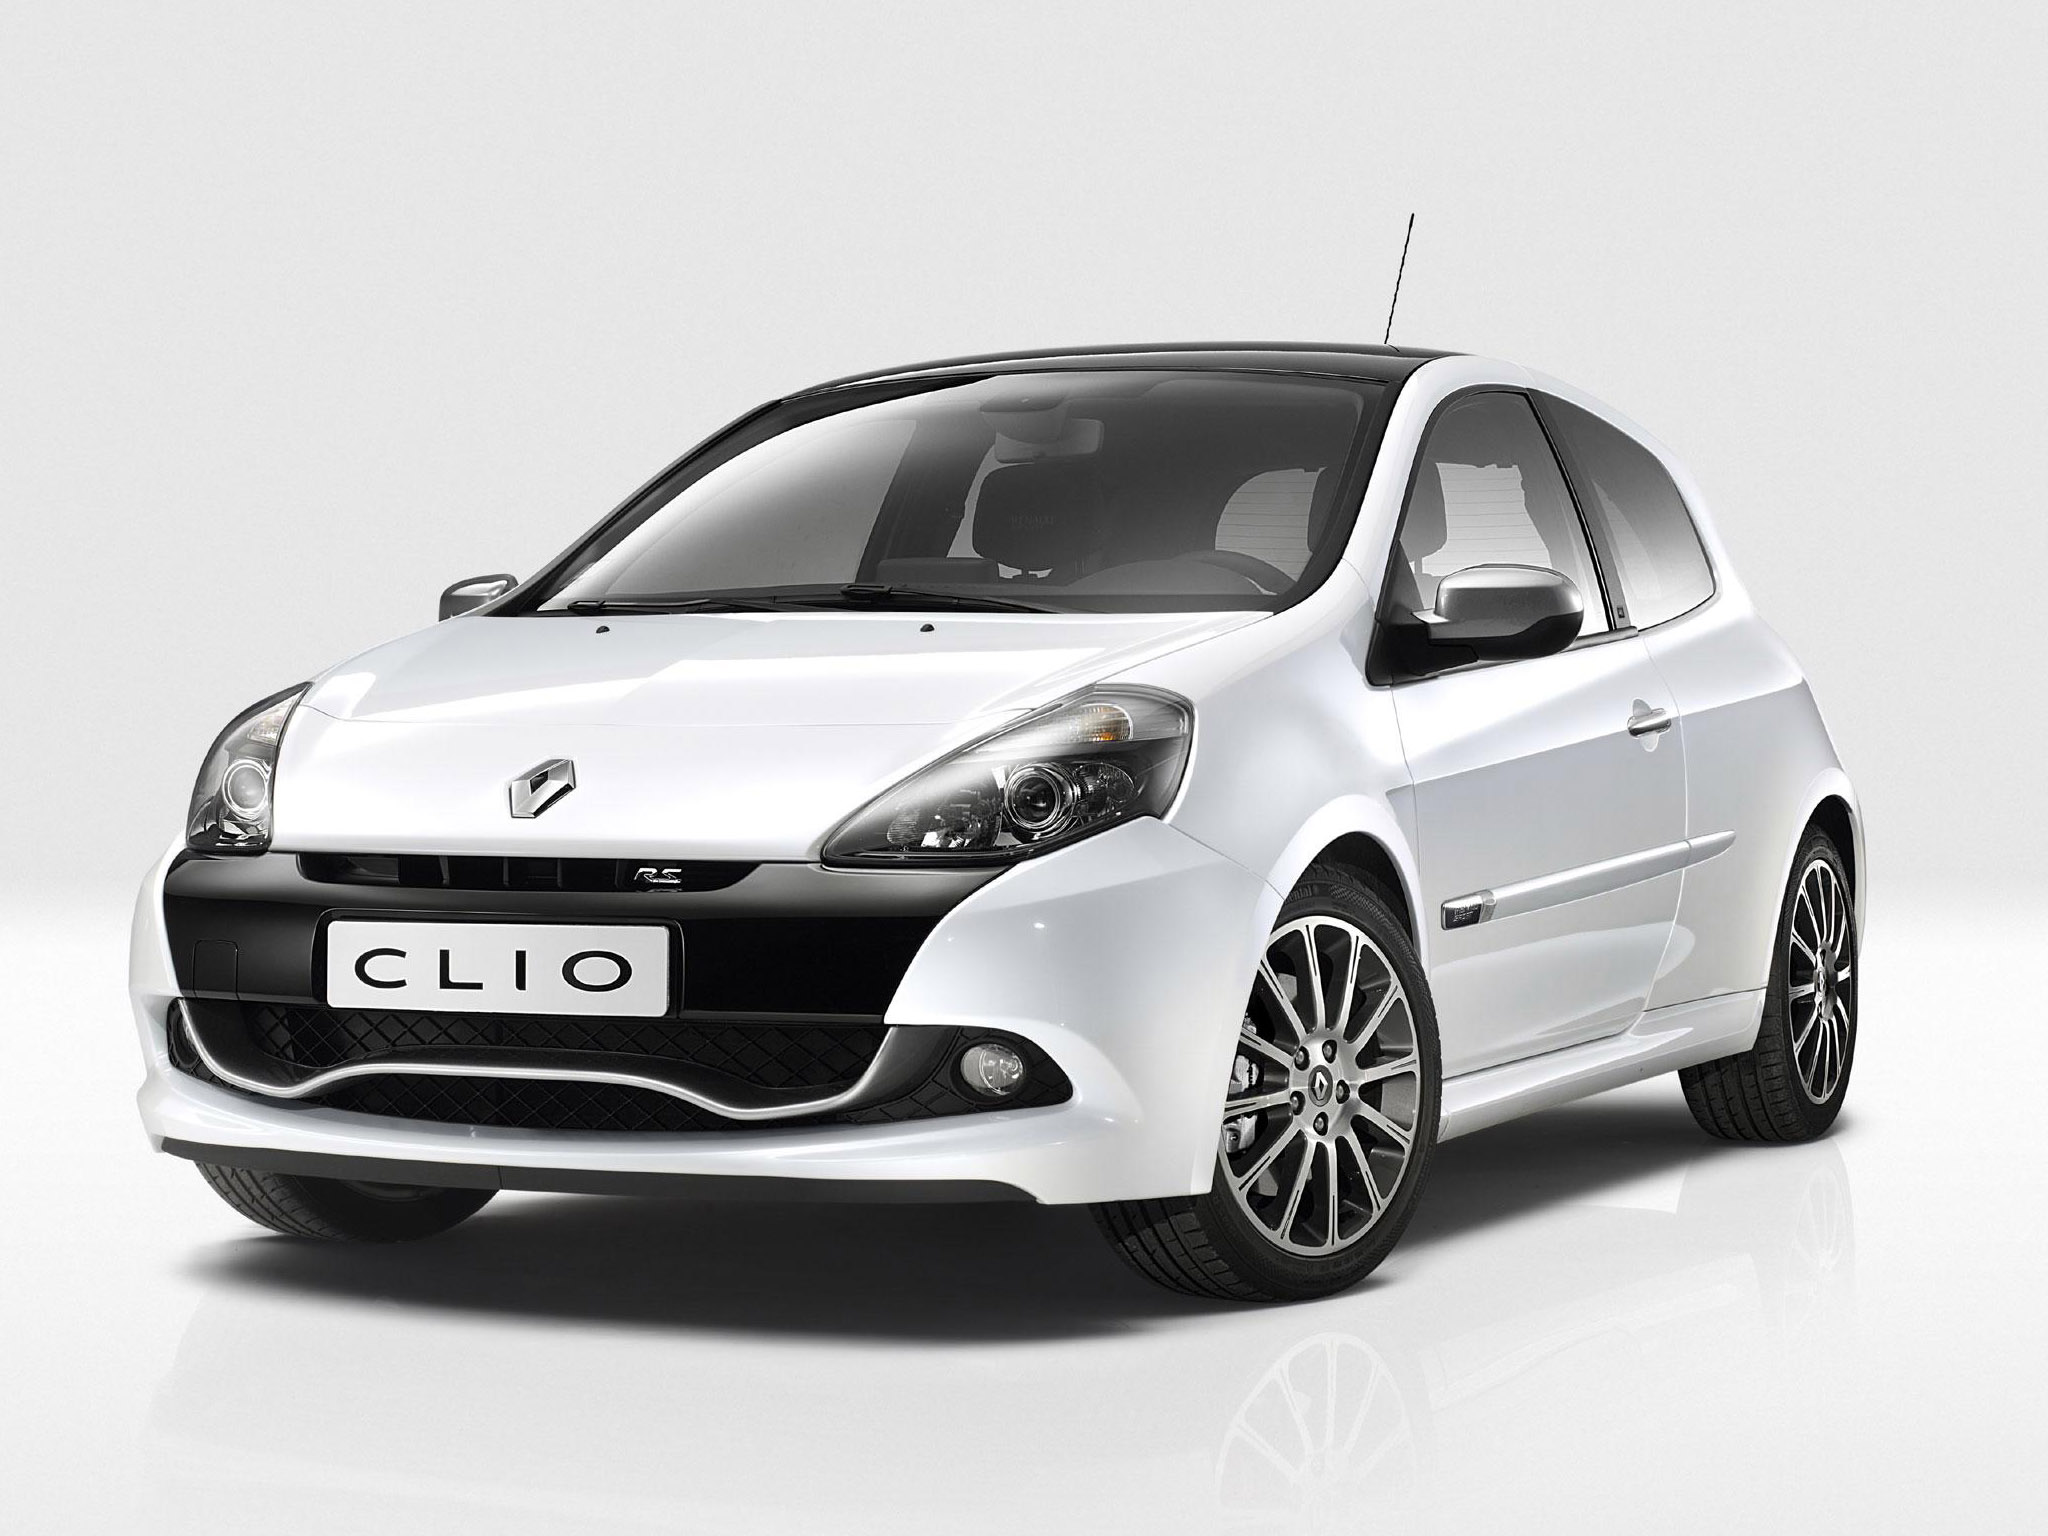 renault clio 20th limited edition 2010 renault clio 20th limited edition 2010 photo 10 car in. Black Bedroom Furniture Sets. Home Design Ideas